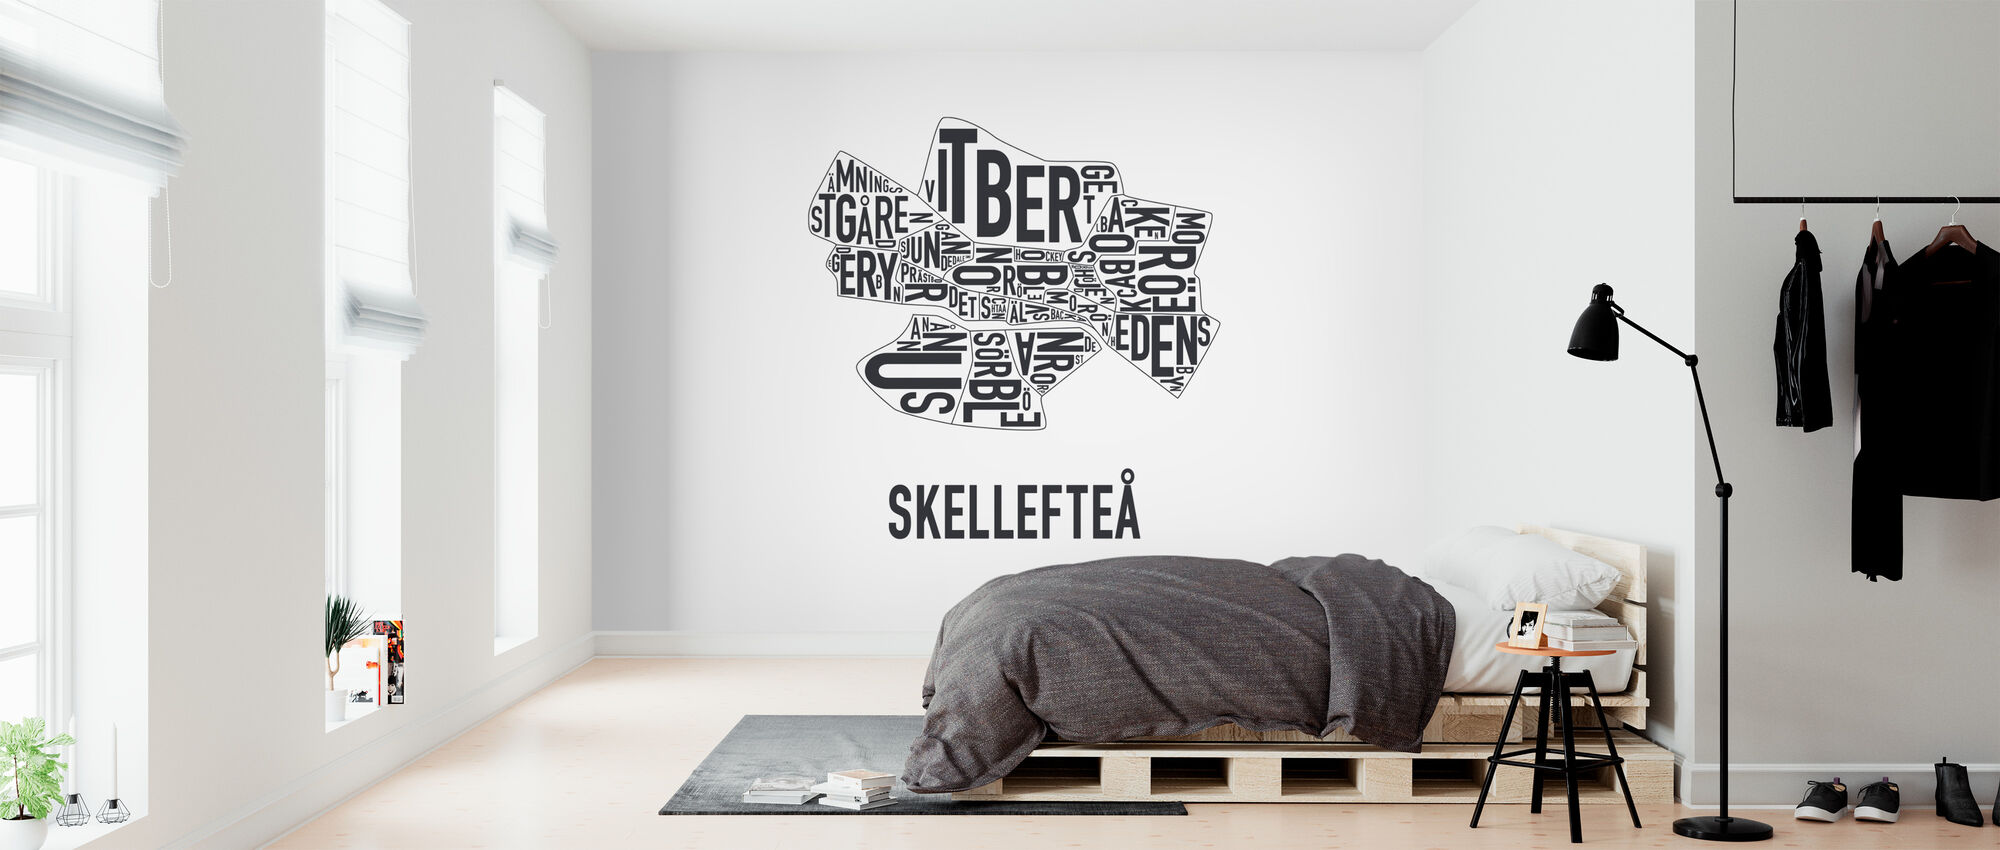 Skellefteå - Wallpaper - Bedroom